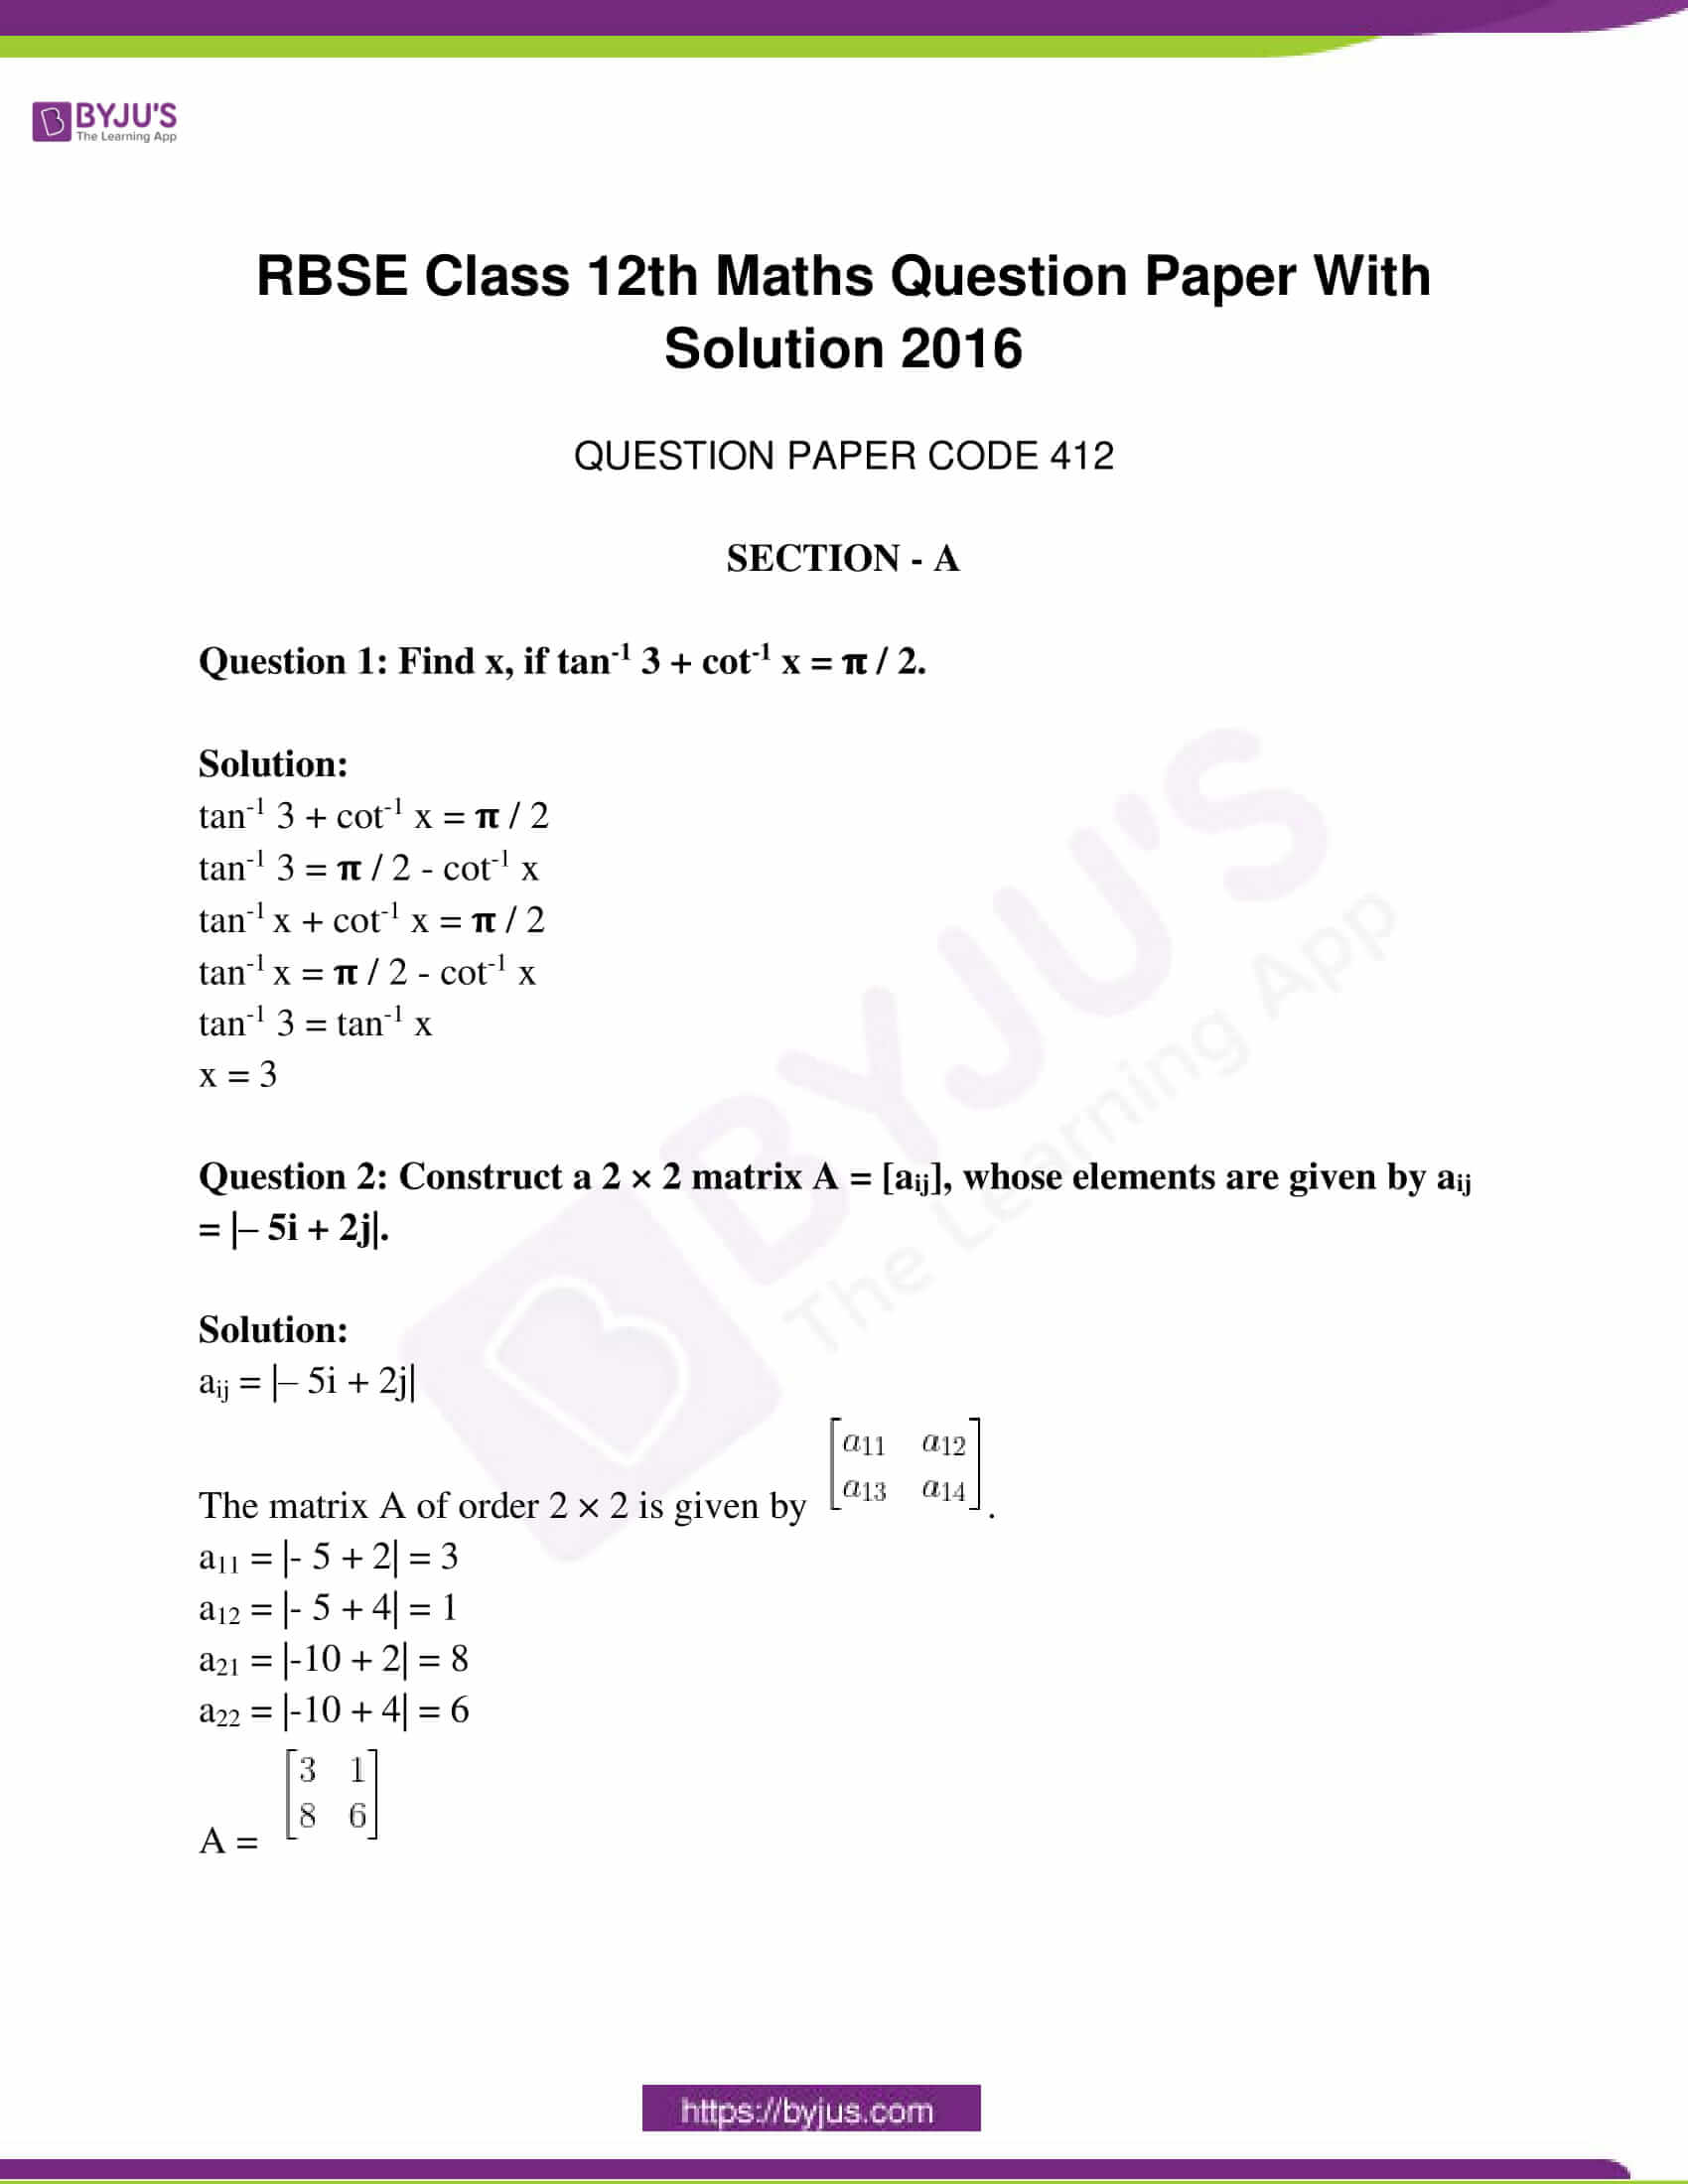 rajasthan class 12 exam question paper solutions march 2016 01